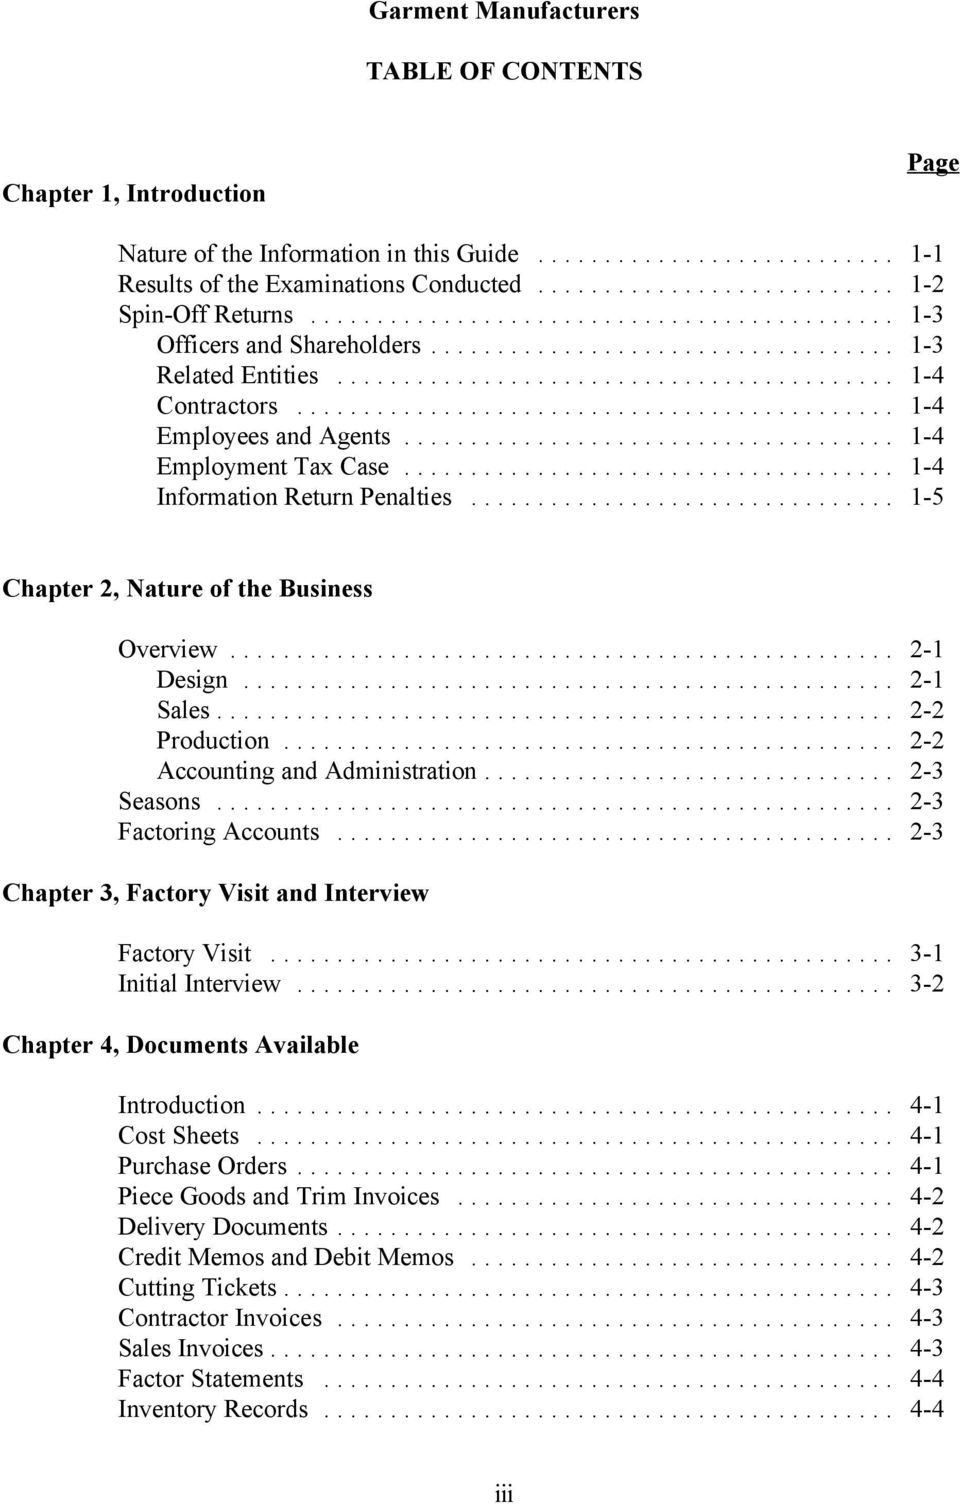 .. 1-5 Chapter 2, Nature of the Business Overview... 2-1 Design... 2-1 Sales... 2-2 Production... 2-2 Accounting and Administration... 2-3 Seasons... 2-3 Factoring Accounts.